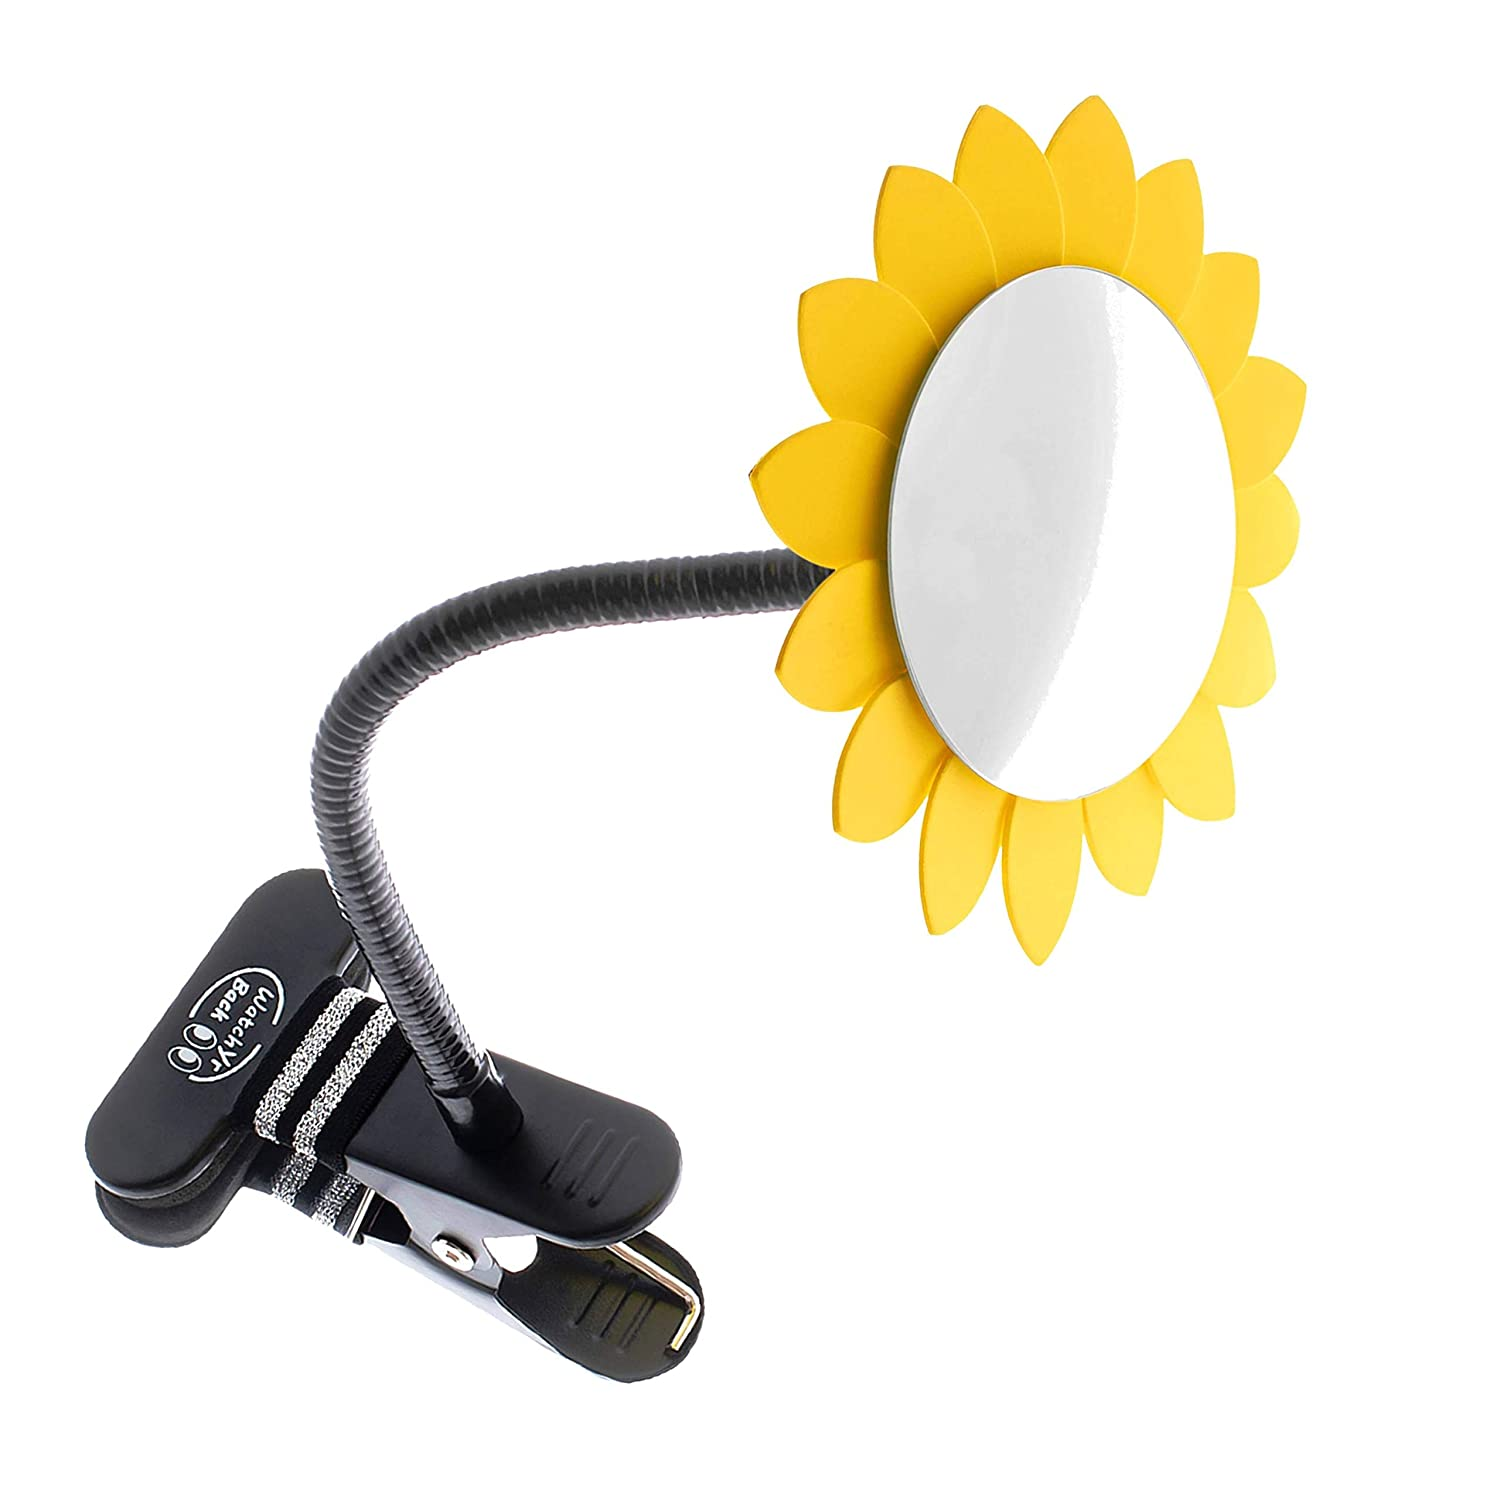 Clip-On Convex Mirror Yellow Sun Flower Decoration for Desk and Cubicle to See Behind You. Wide Angle View Clear Reflection. Real Glass Round Mirror